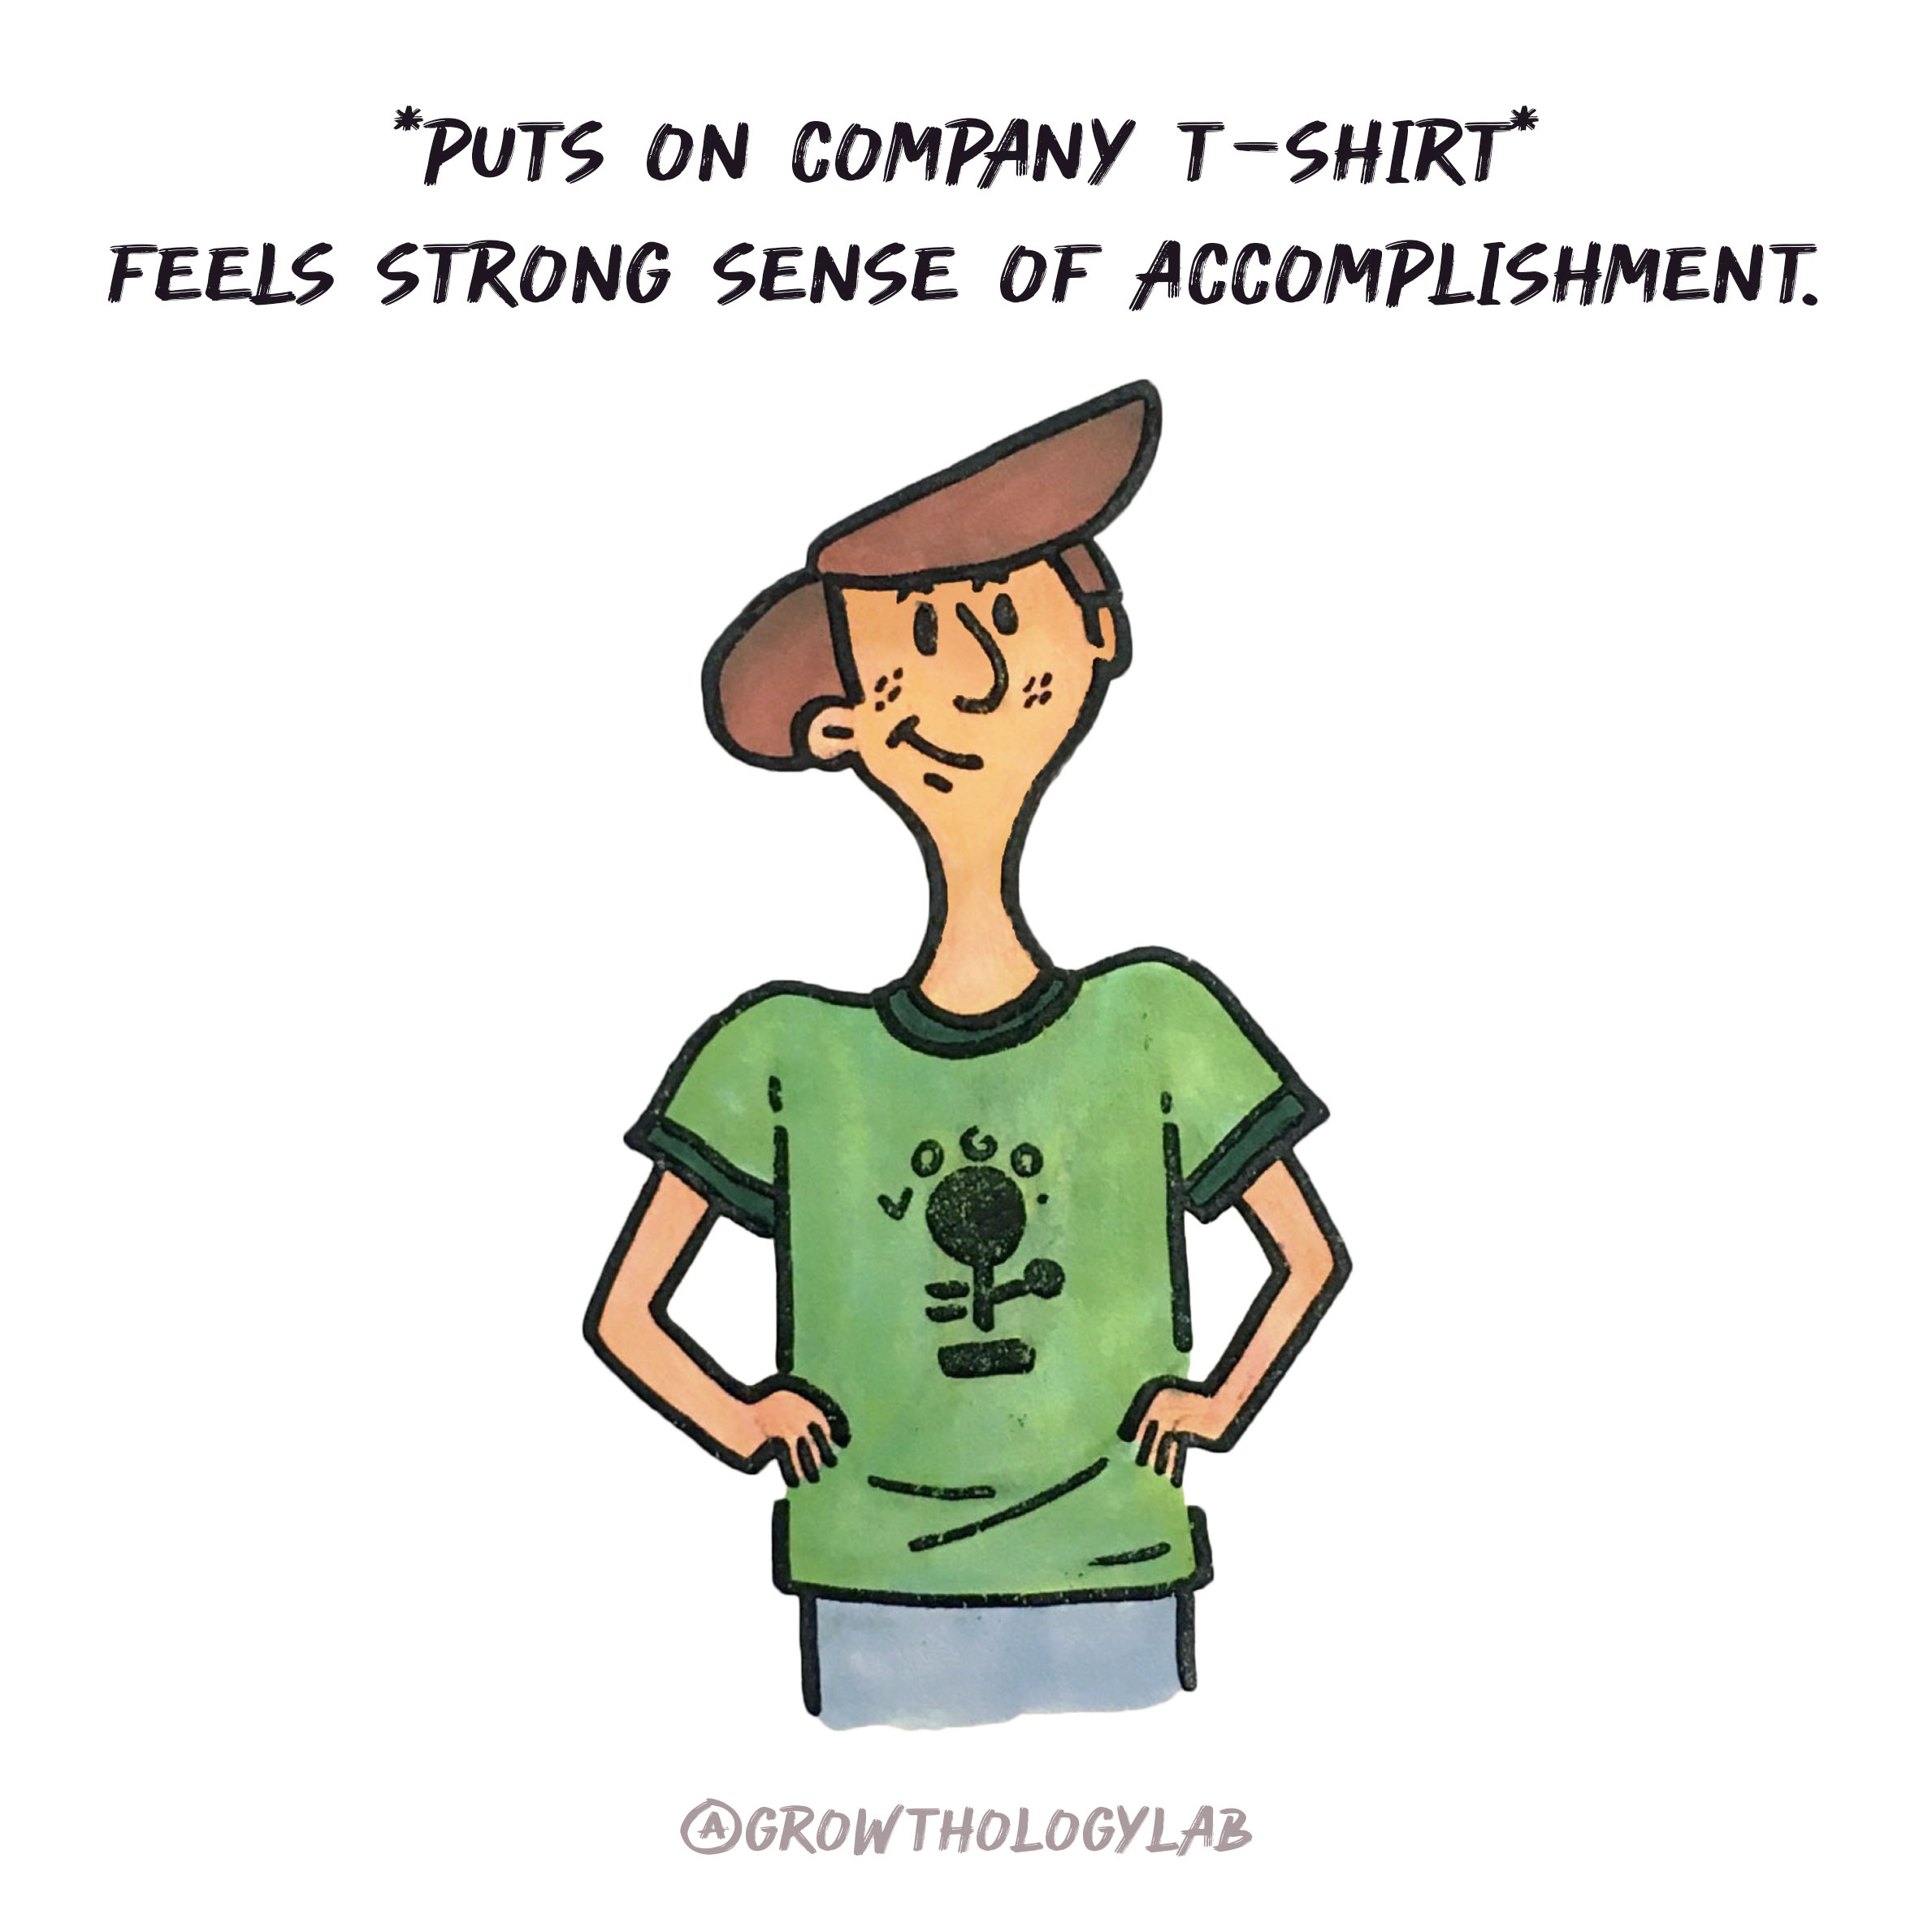 growthology-lab_the-company-tshirt.jpg